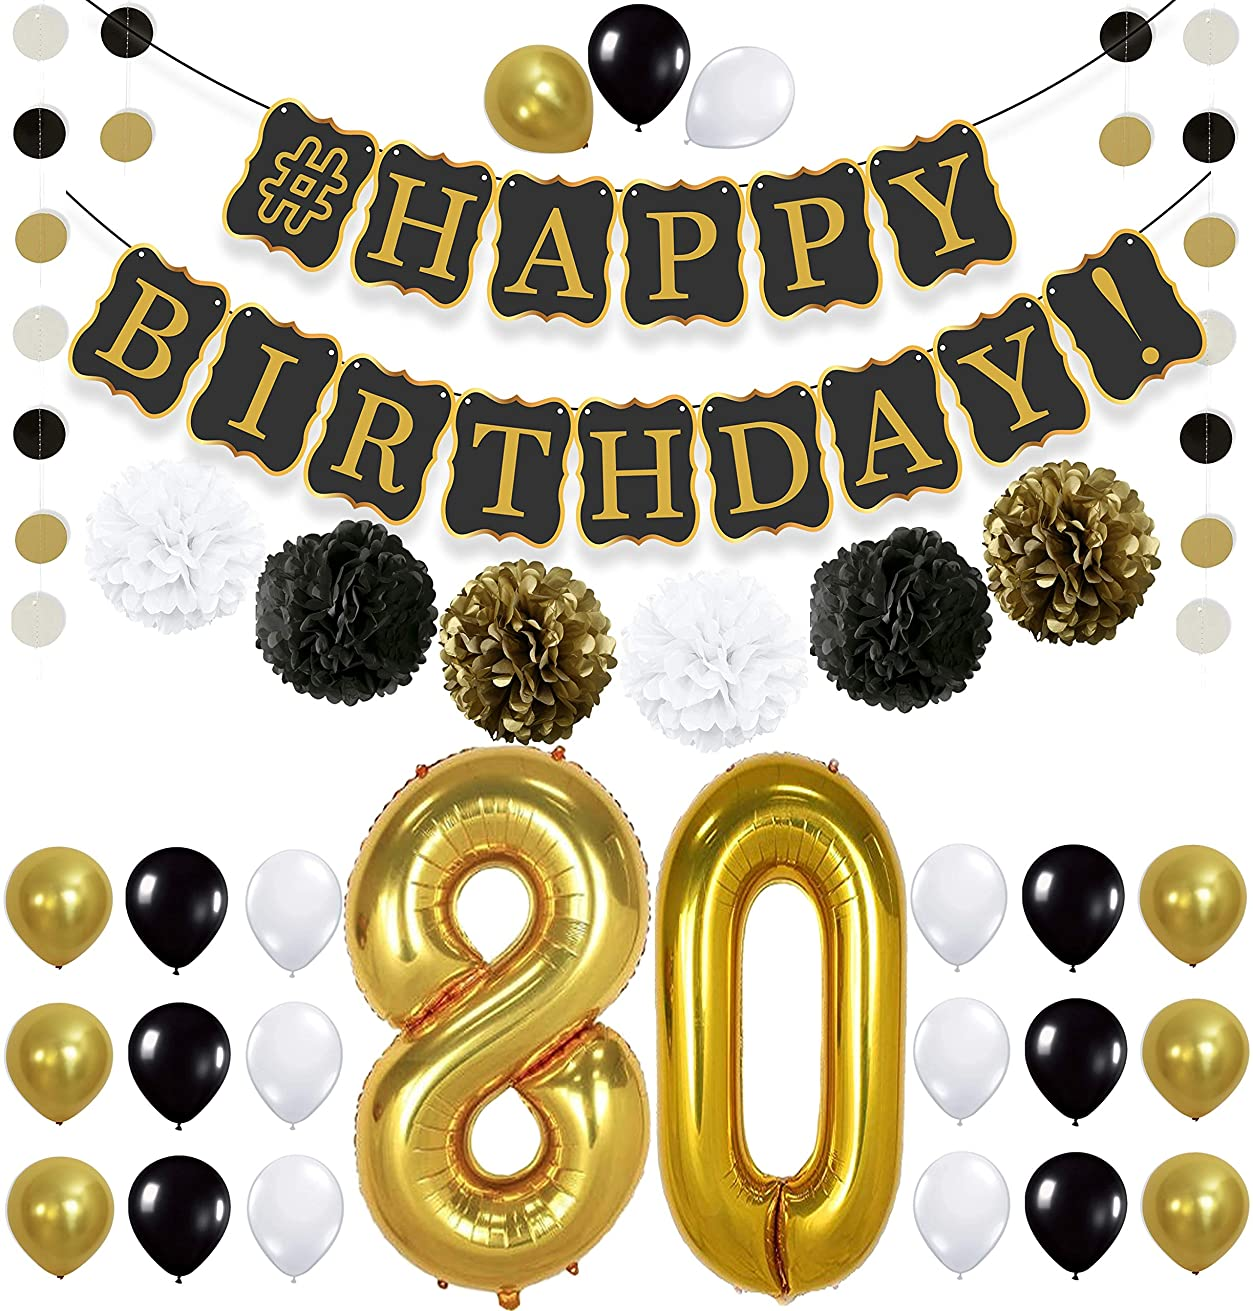 Black 80th BIRTHDAY DECORATIONS PARTY KIT - Black Gold and White PomPoms | Latex Balloons | Gold Number 80 Ballon | 80th Birthday Party Decorations | Great 80 Year Old Party Supplies